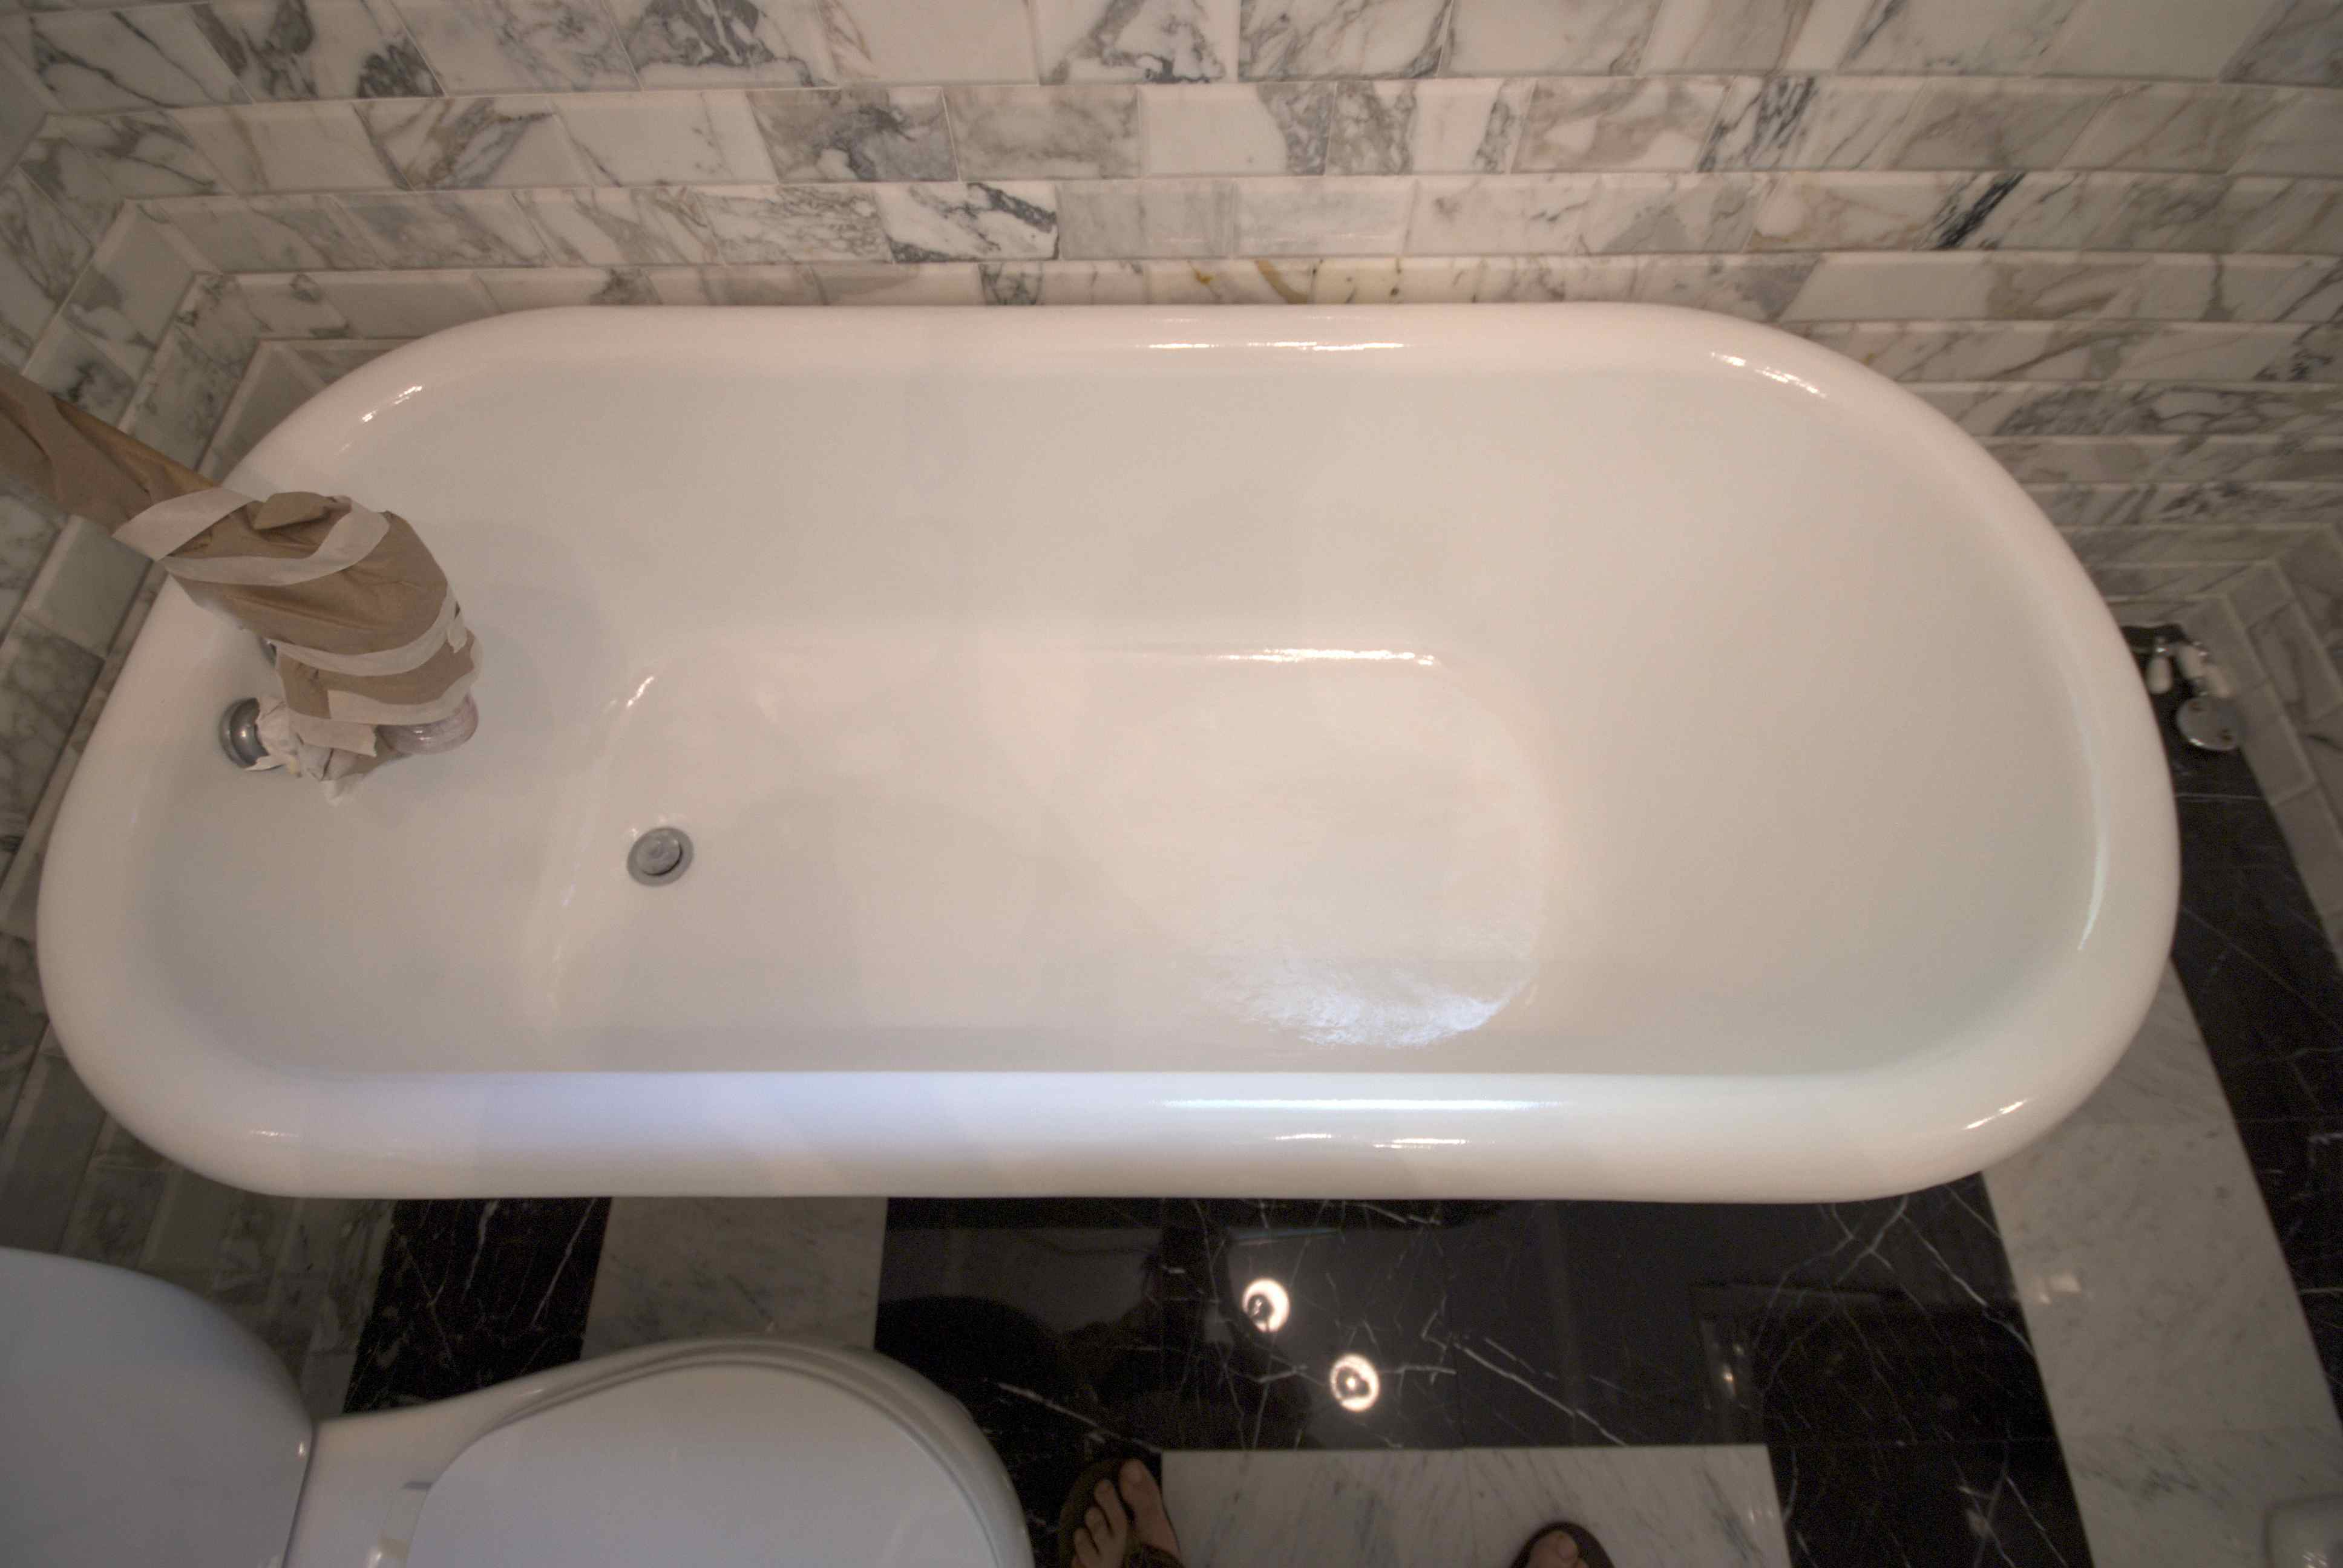 Cute Tub Paint Tiny Bathtub Refinishers Clean Bath Refinishing Service Bathtub Repair Contractor Youthful Paint For Tubs Bright Can You Paint A Tub